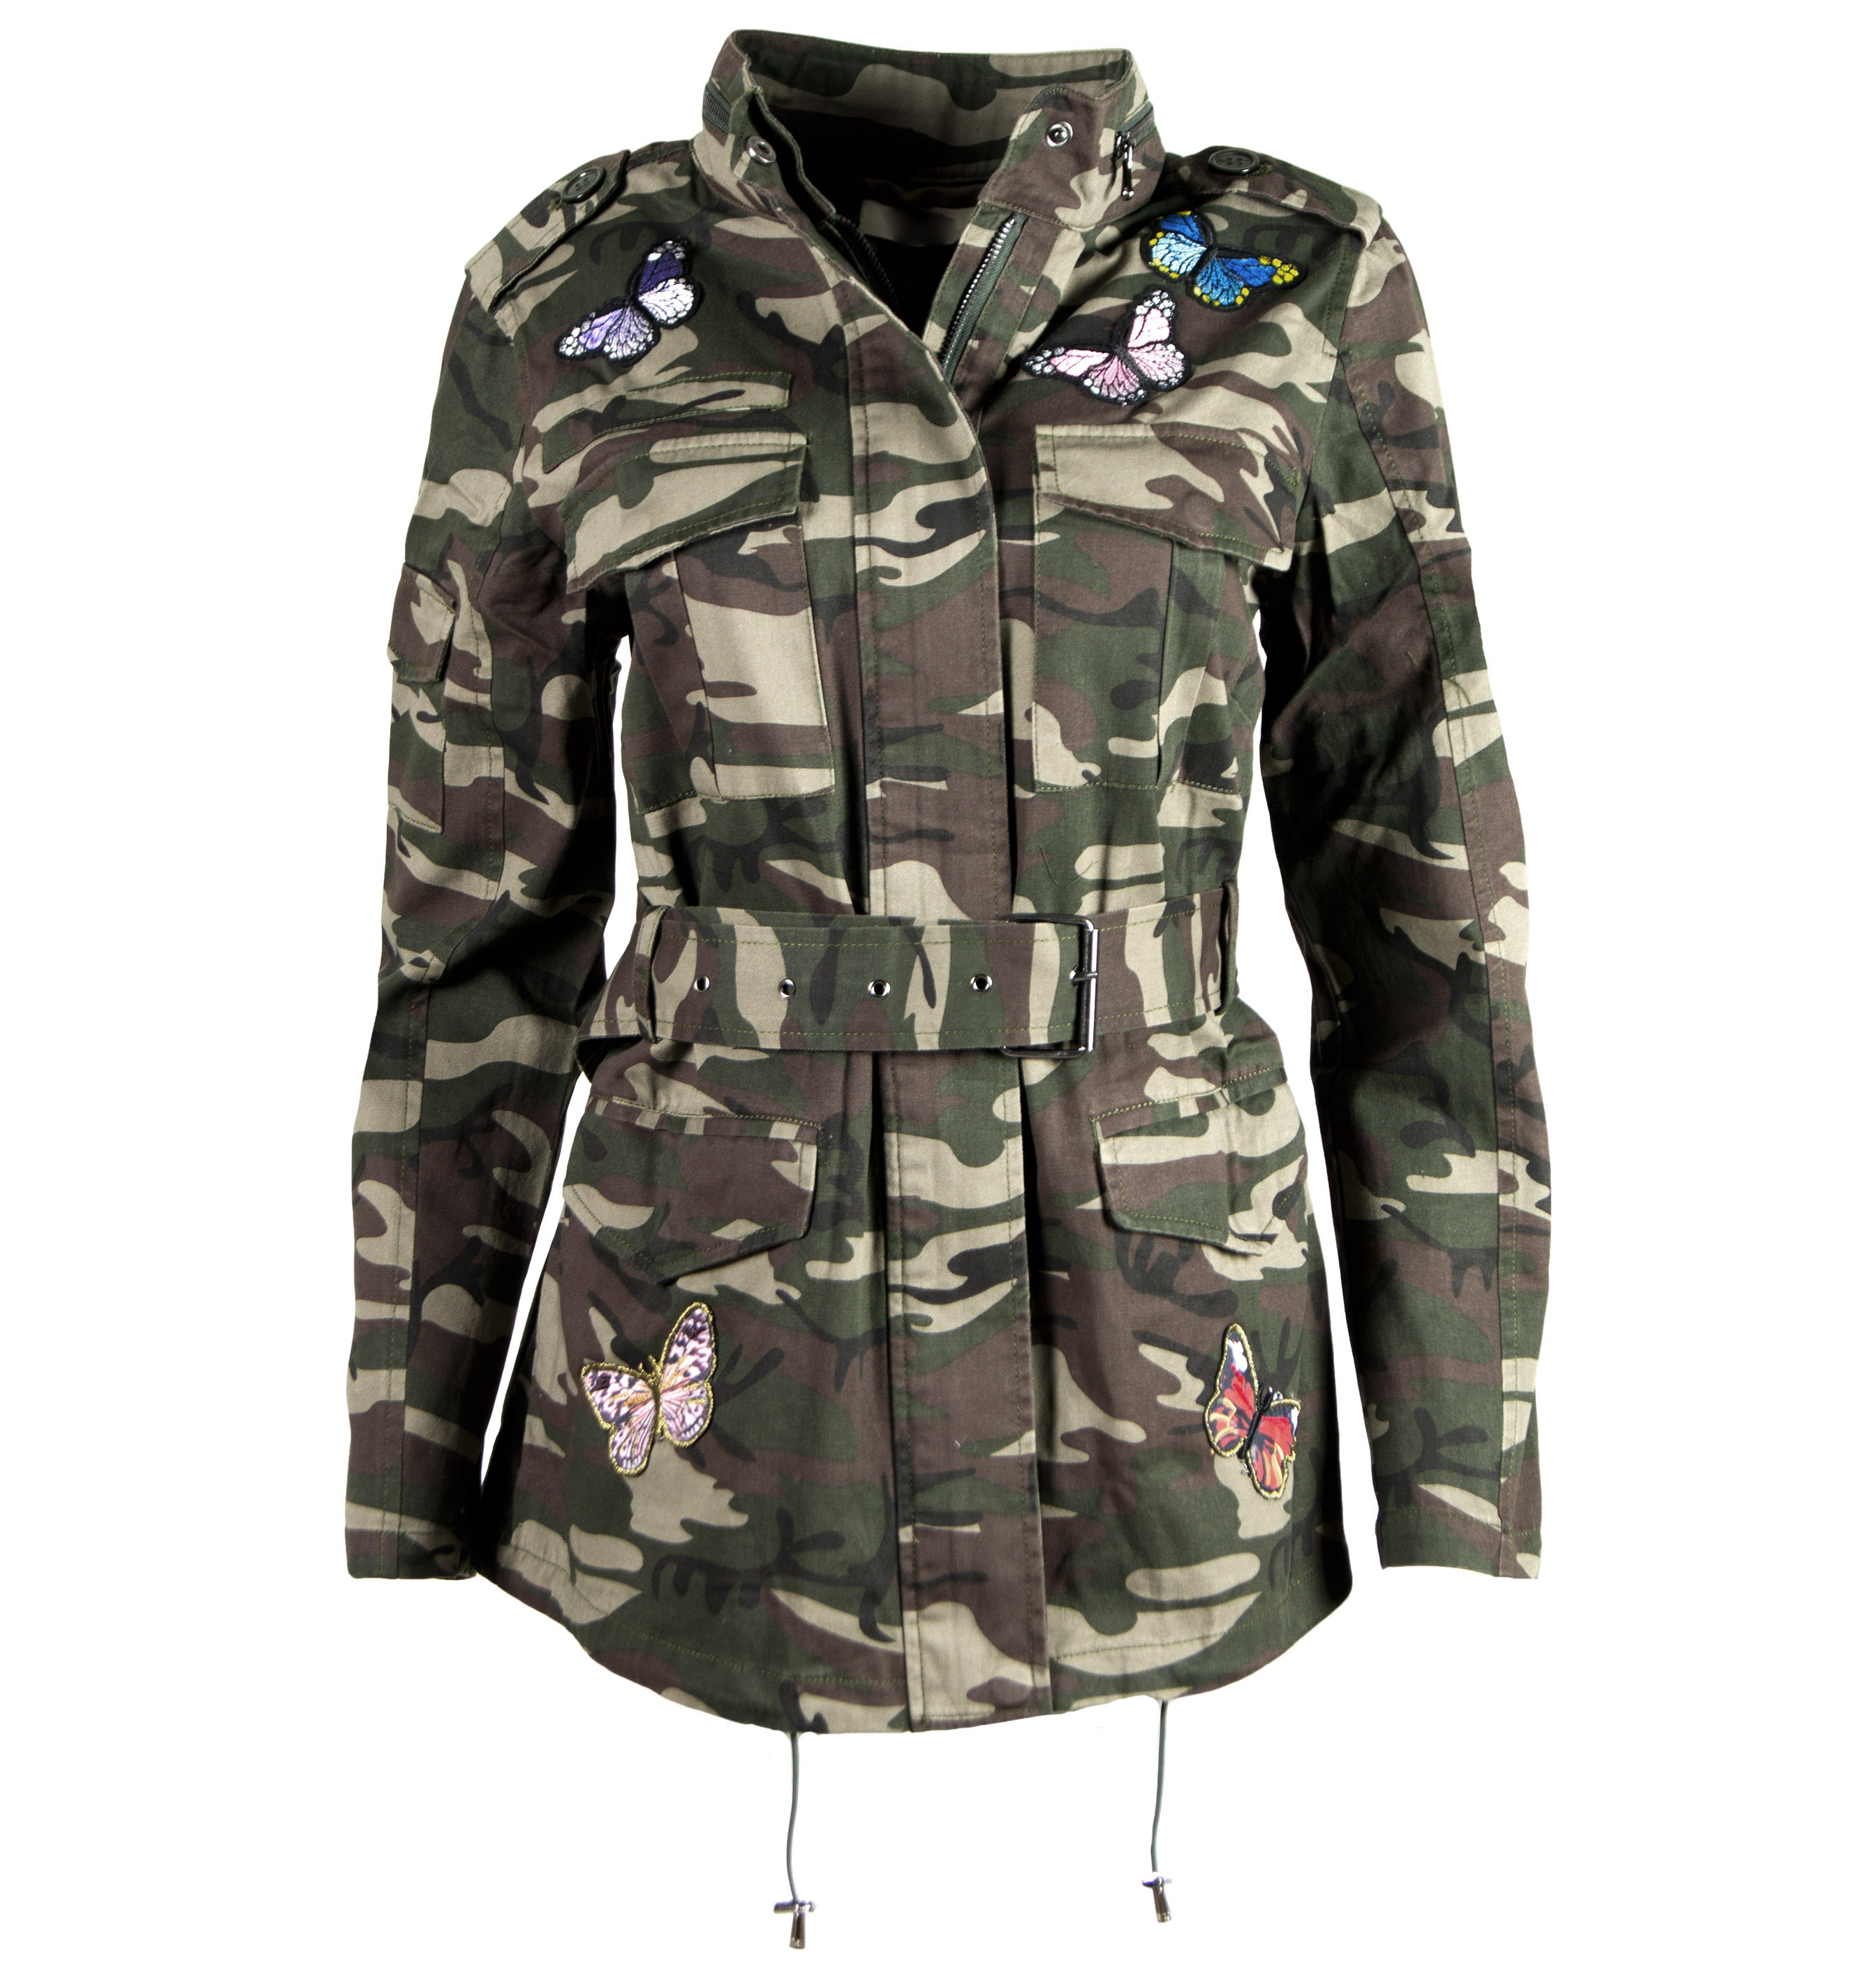 camouflage jacke damen parka damen winter jacke xxl camouflage military kapuze damen designer. Black Bedroom Furniture Sets. Home Design Ideas